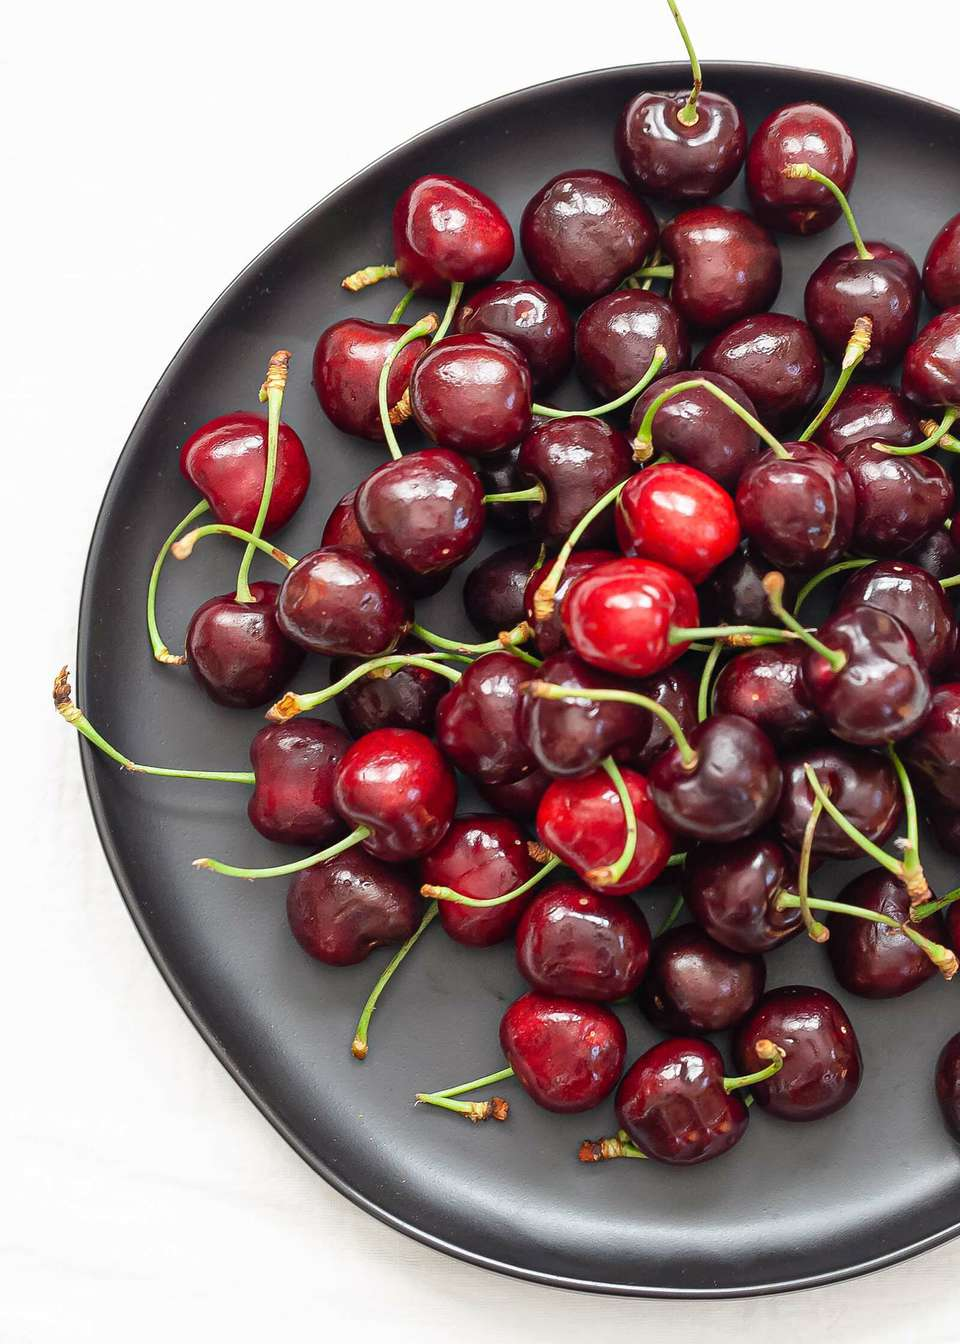 Overhead view of a dark plate with bing cherries piled in the center to show how to choose the best cherries.